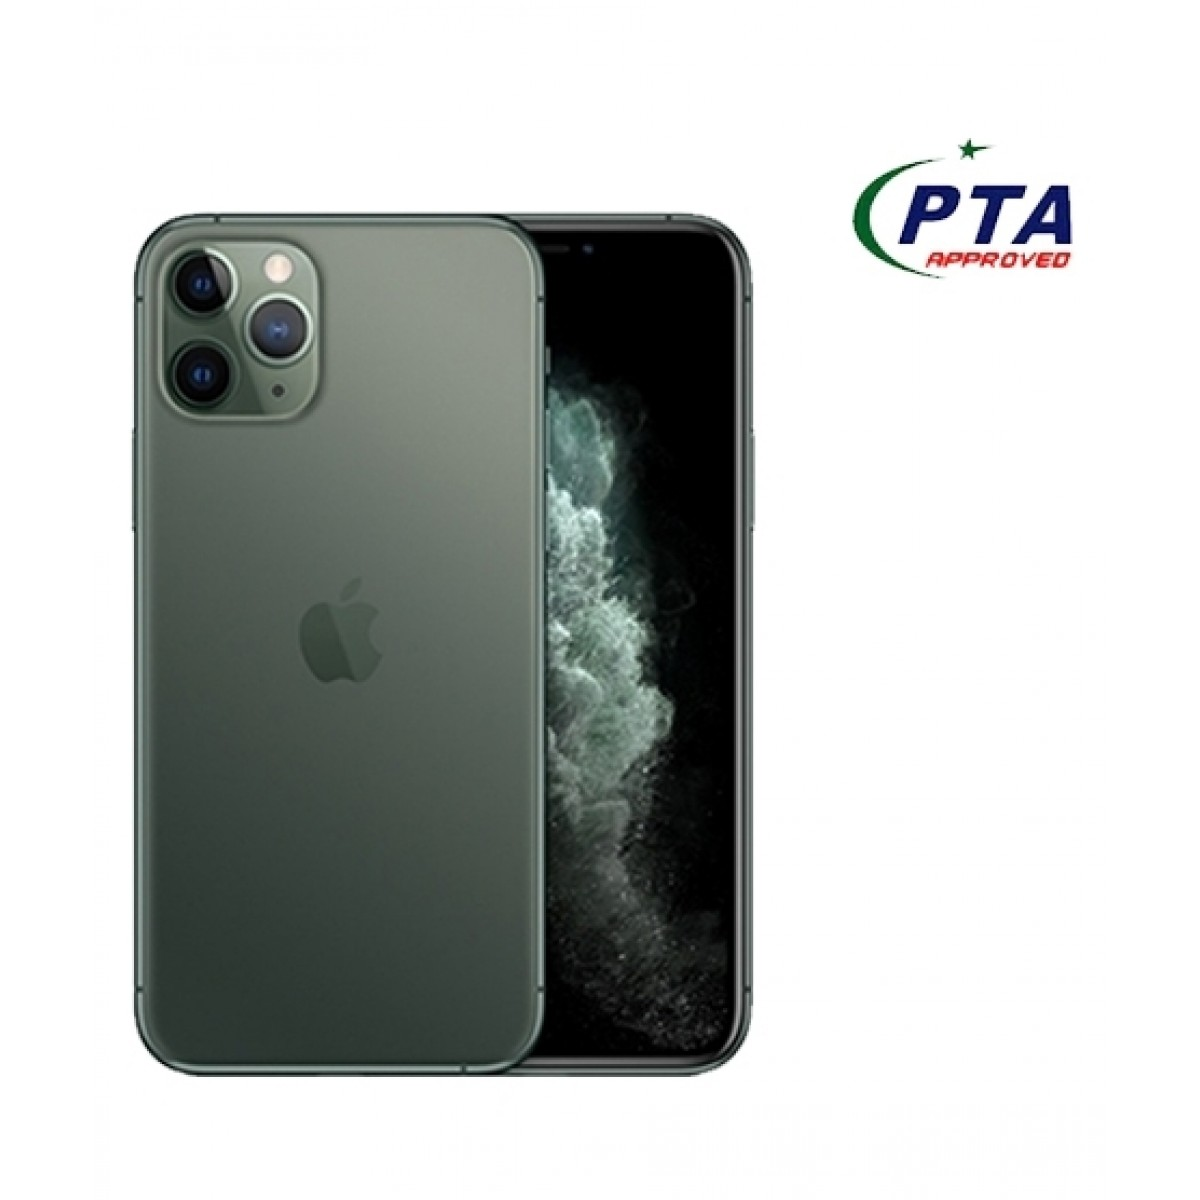 Apple Iphone 11 Pro Max 256gb Dual Sim Midnight Green Official Warranty Mobilez Experts